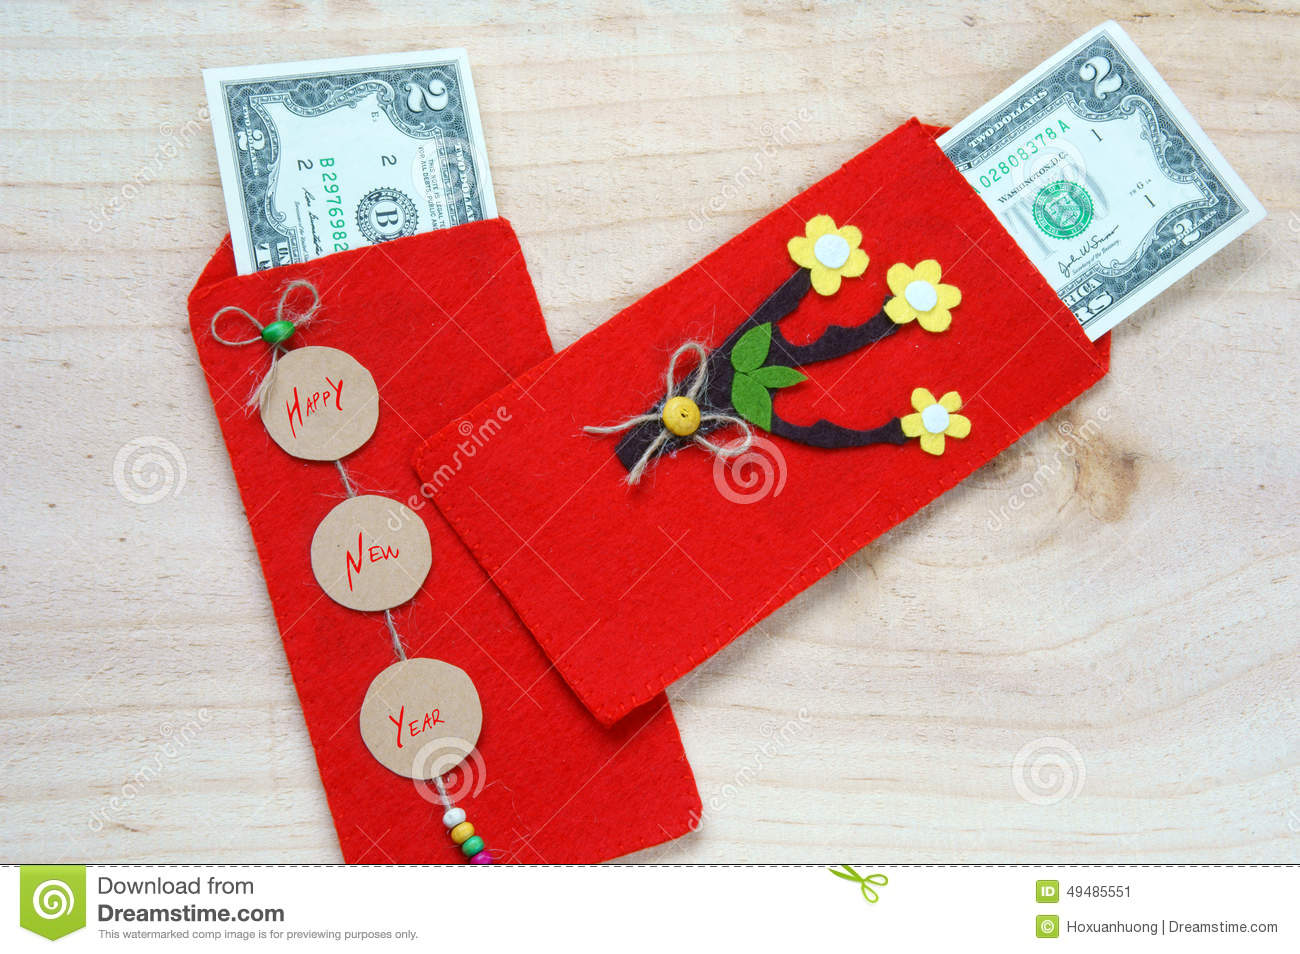 ... happy new year, receive red envelope with new small change, Tet on